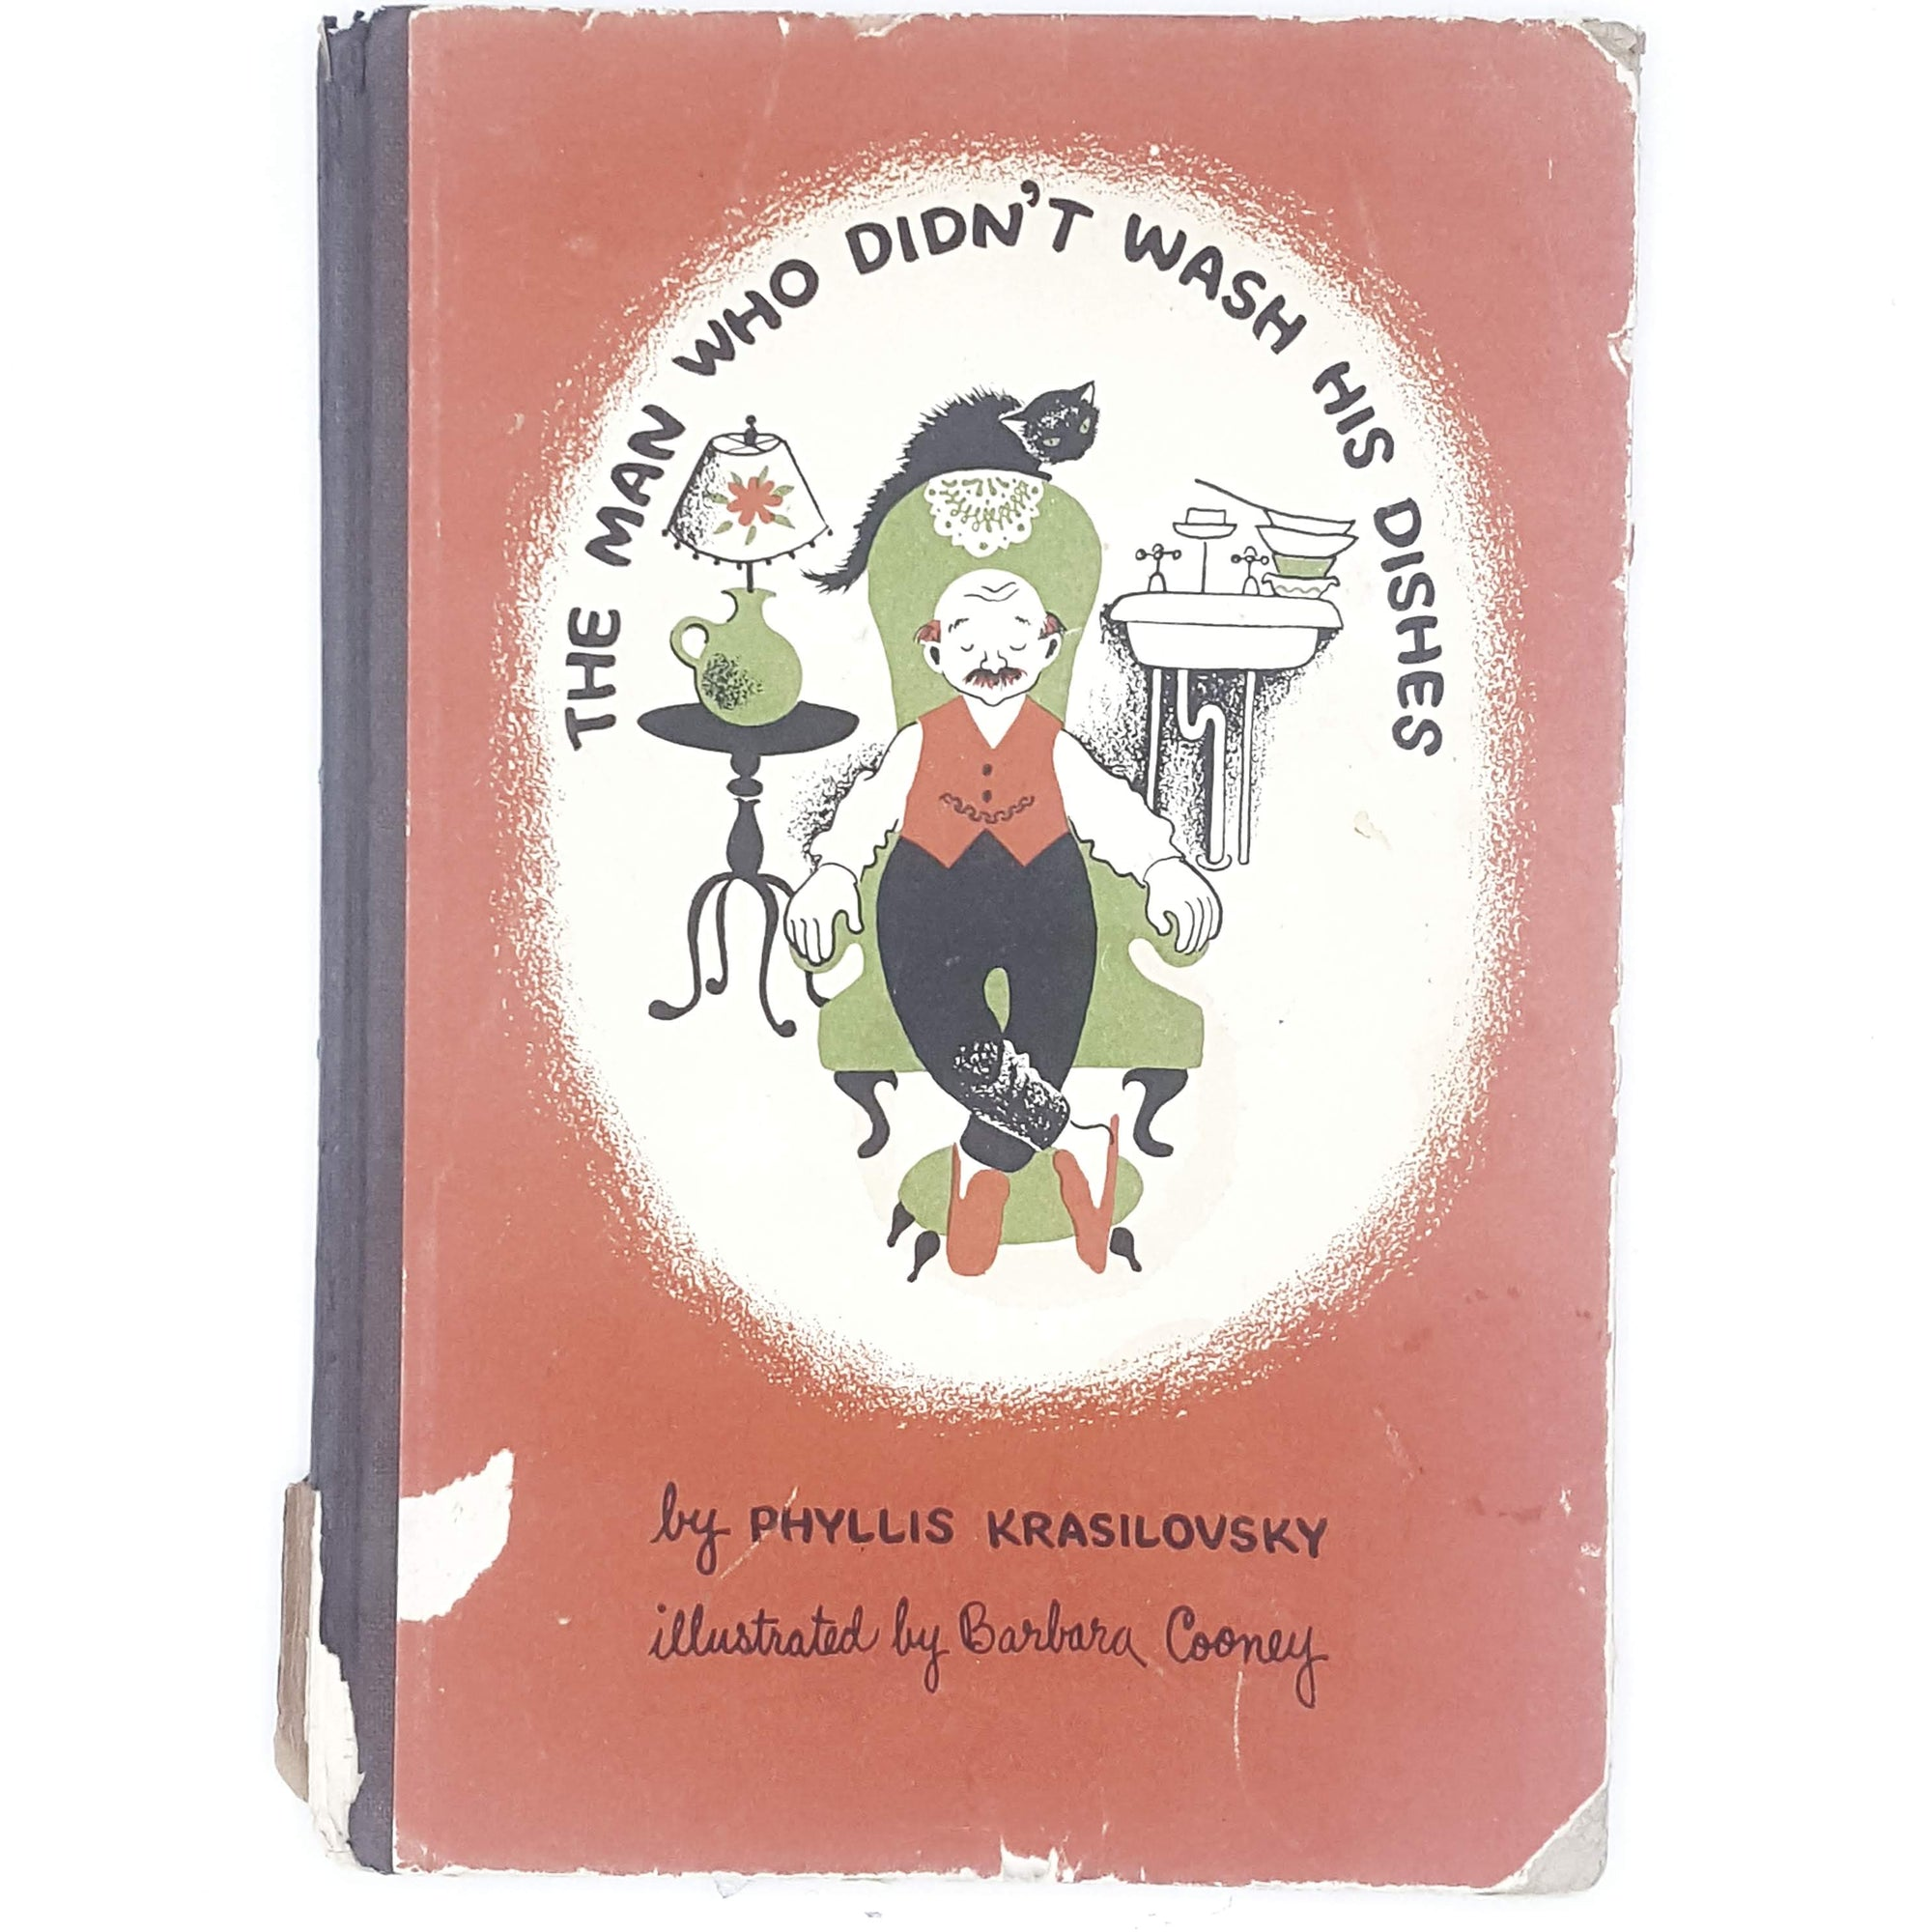 First Edition The Man Who Didn't Wash His Dishes 1962